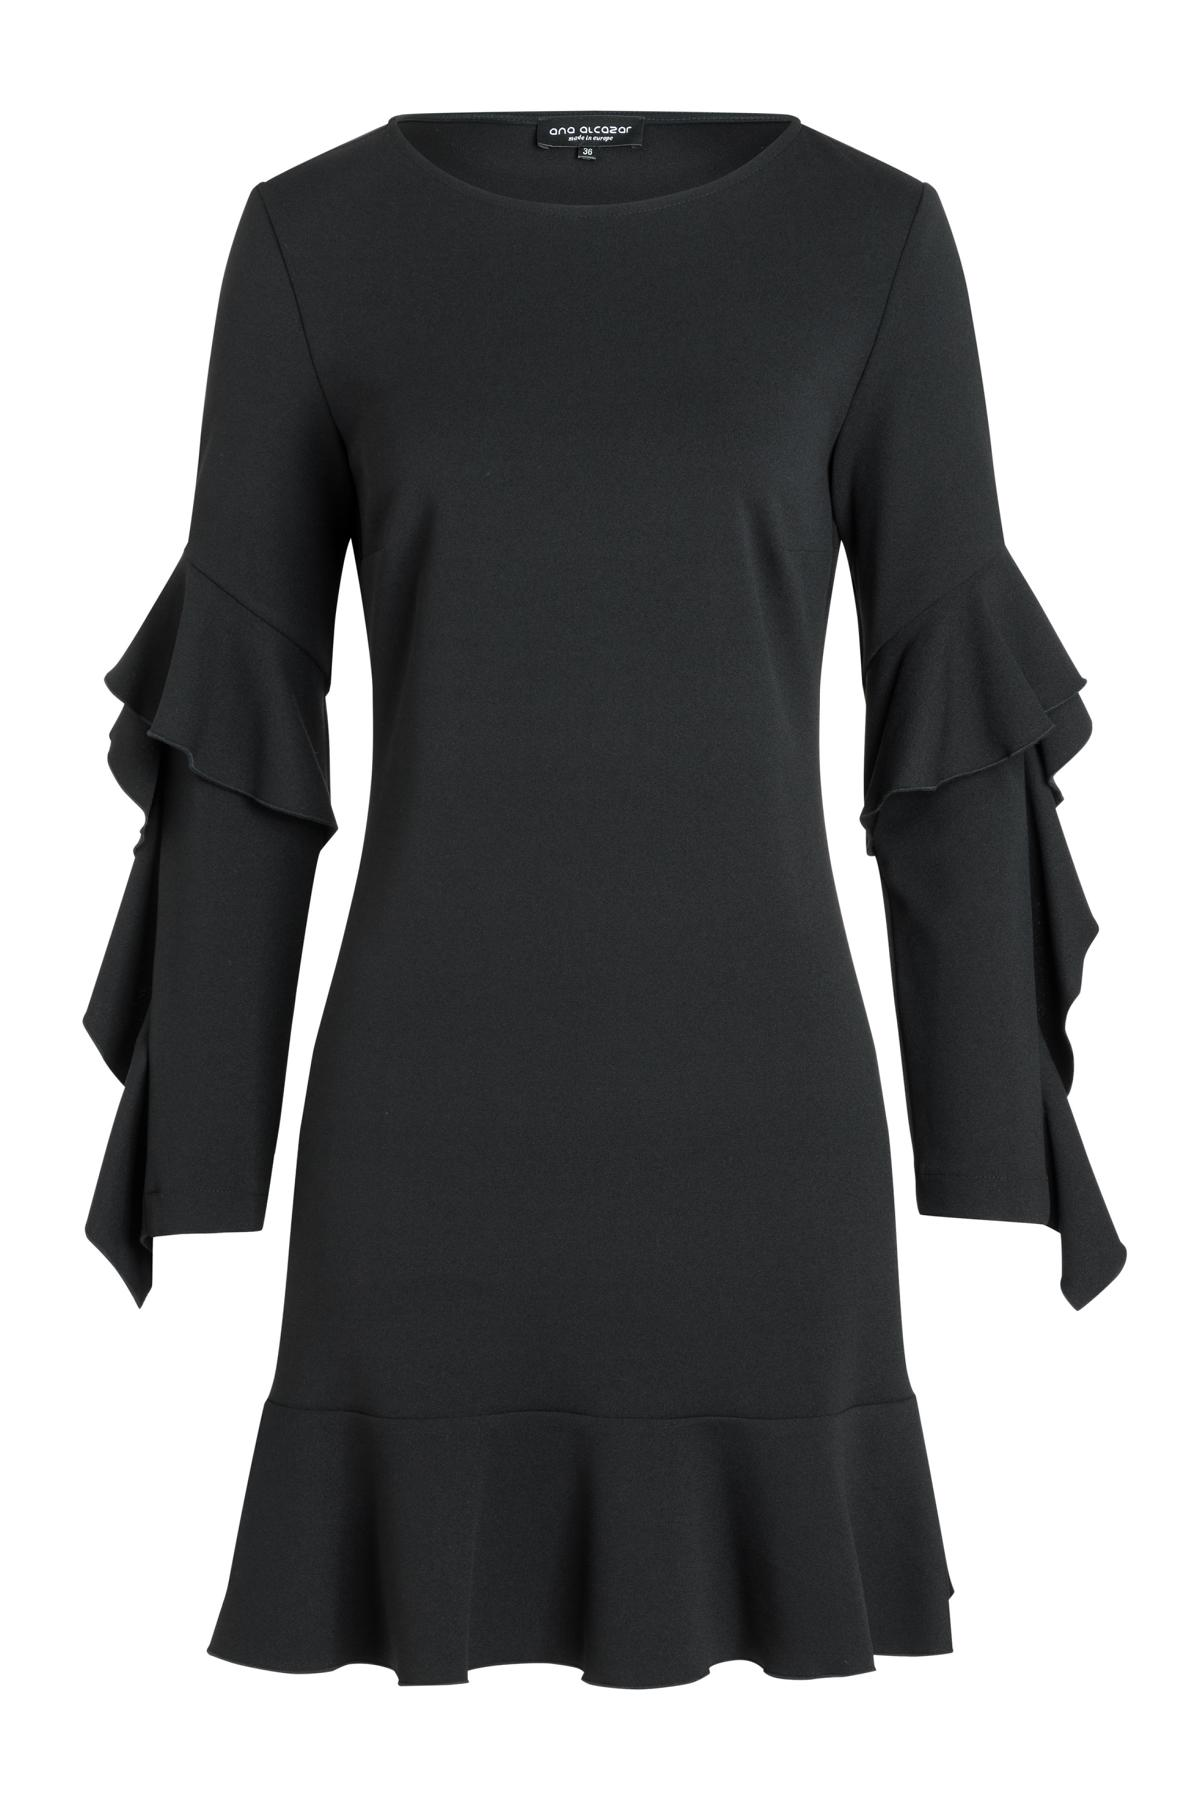 Ana Alcazar Volantsleeve Dress Romy Black